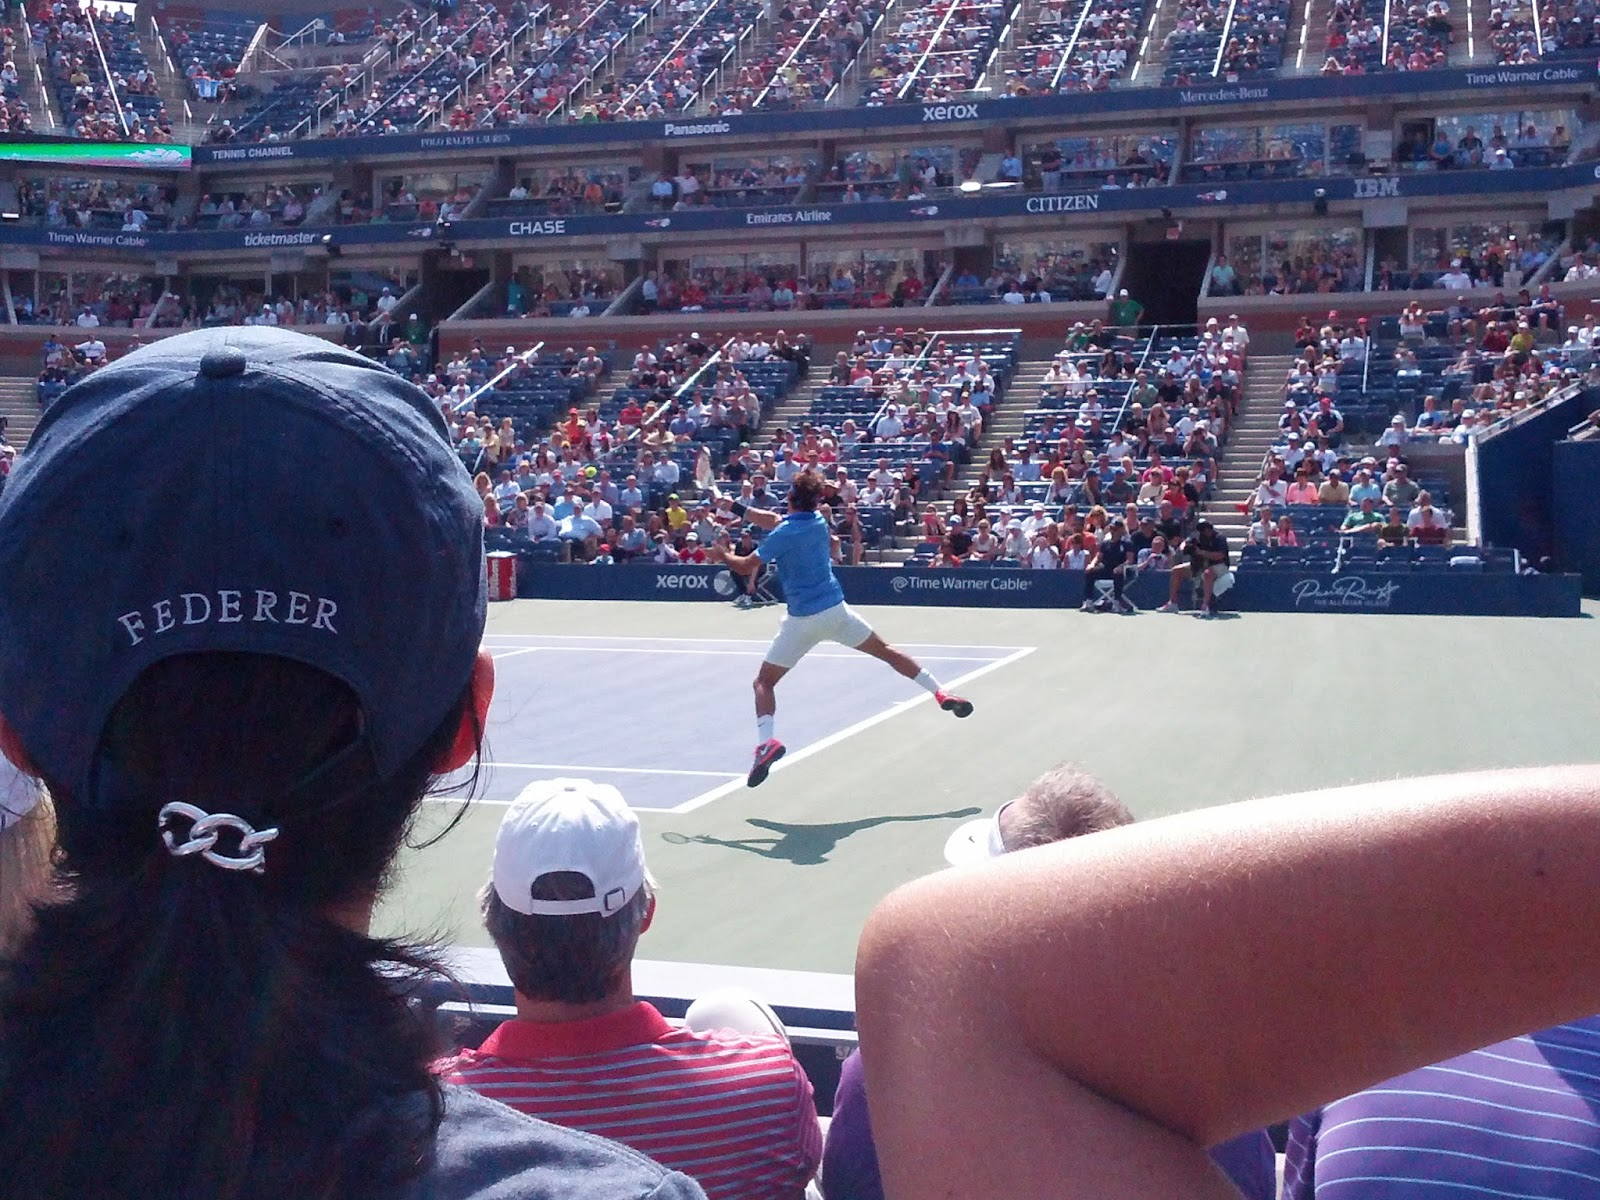 Roger Federer at the US Tennis Open